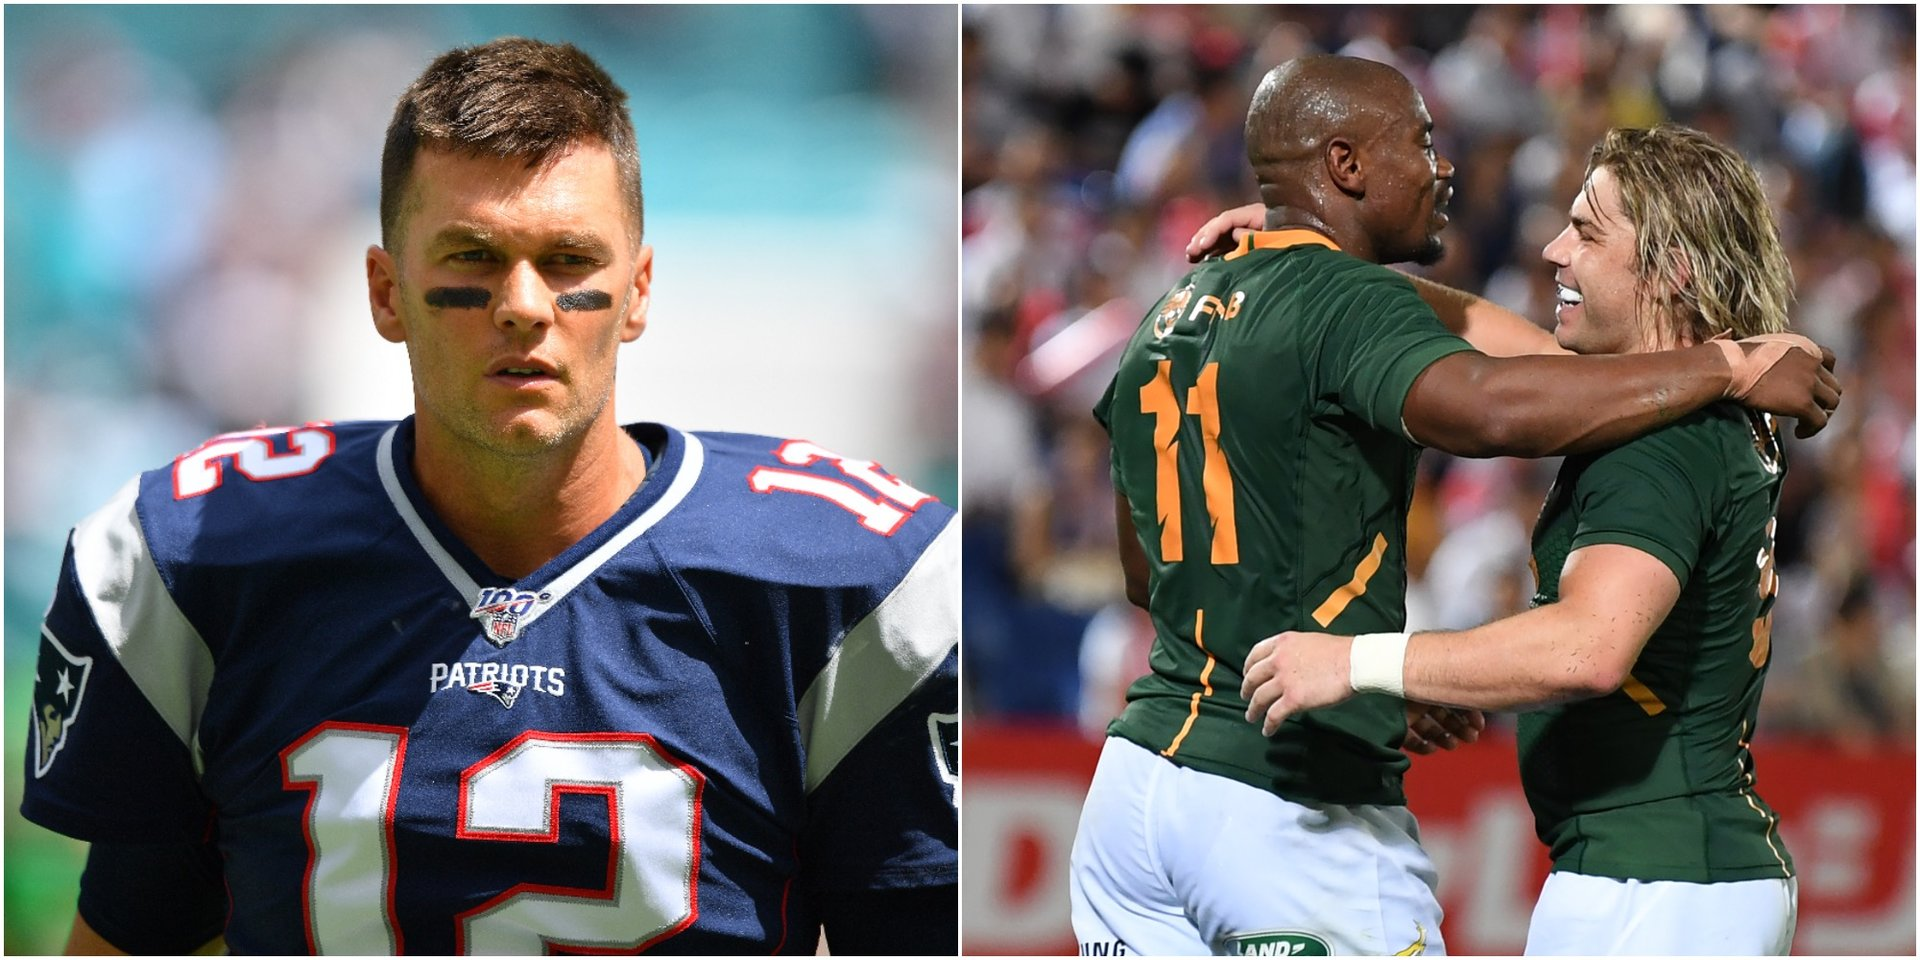 Tom Brady is rooting for South Africa, not the USA, at the Rugby World Cup in Japan